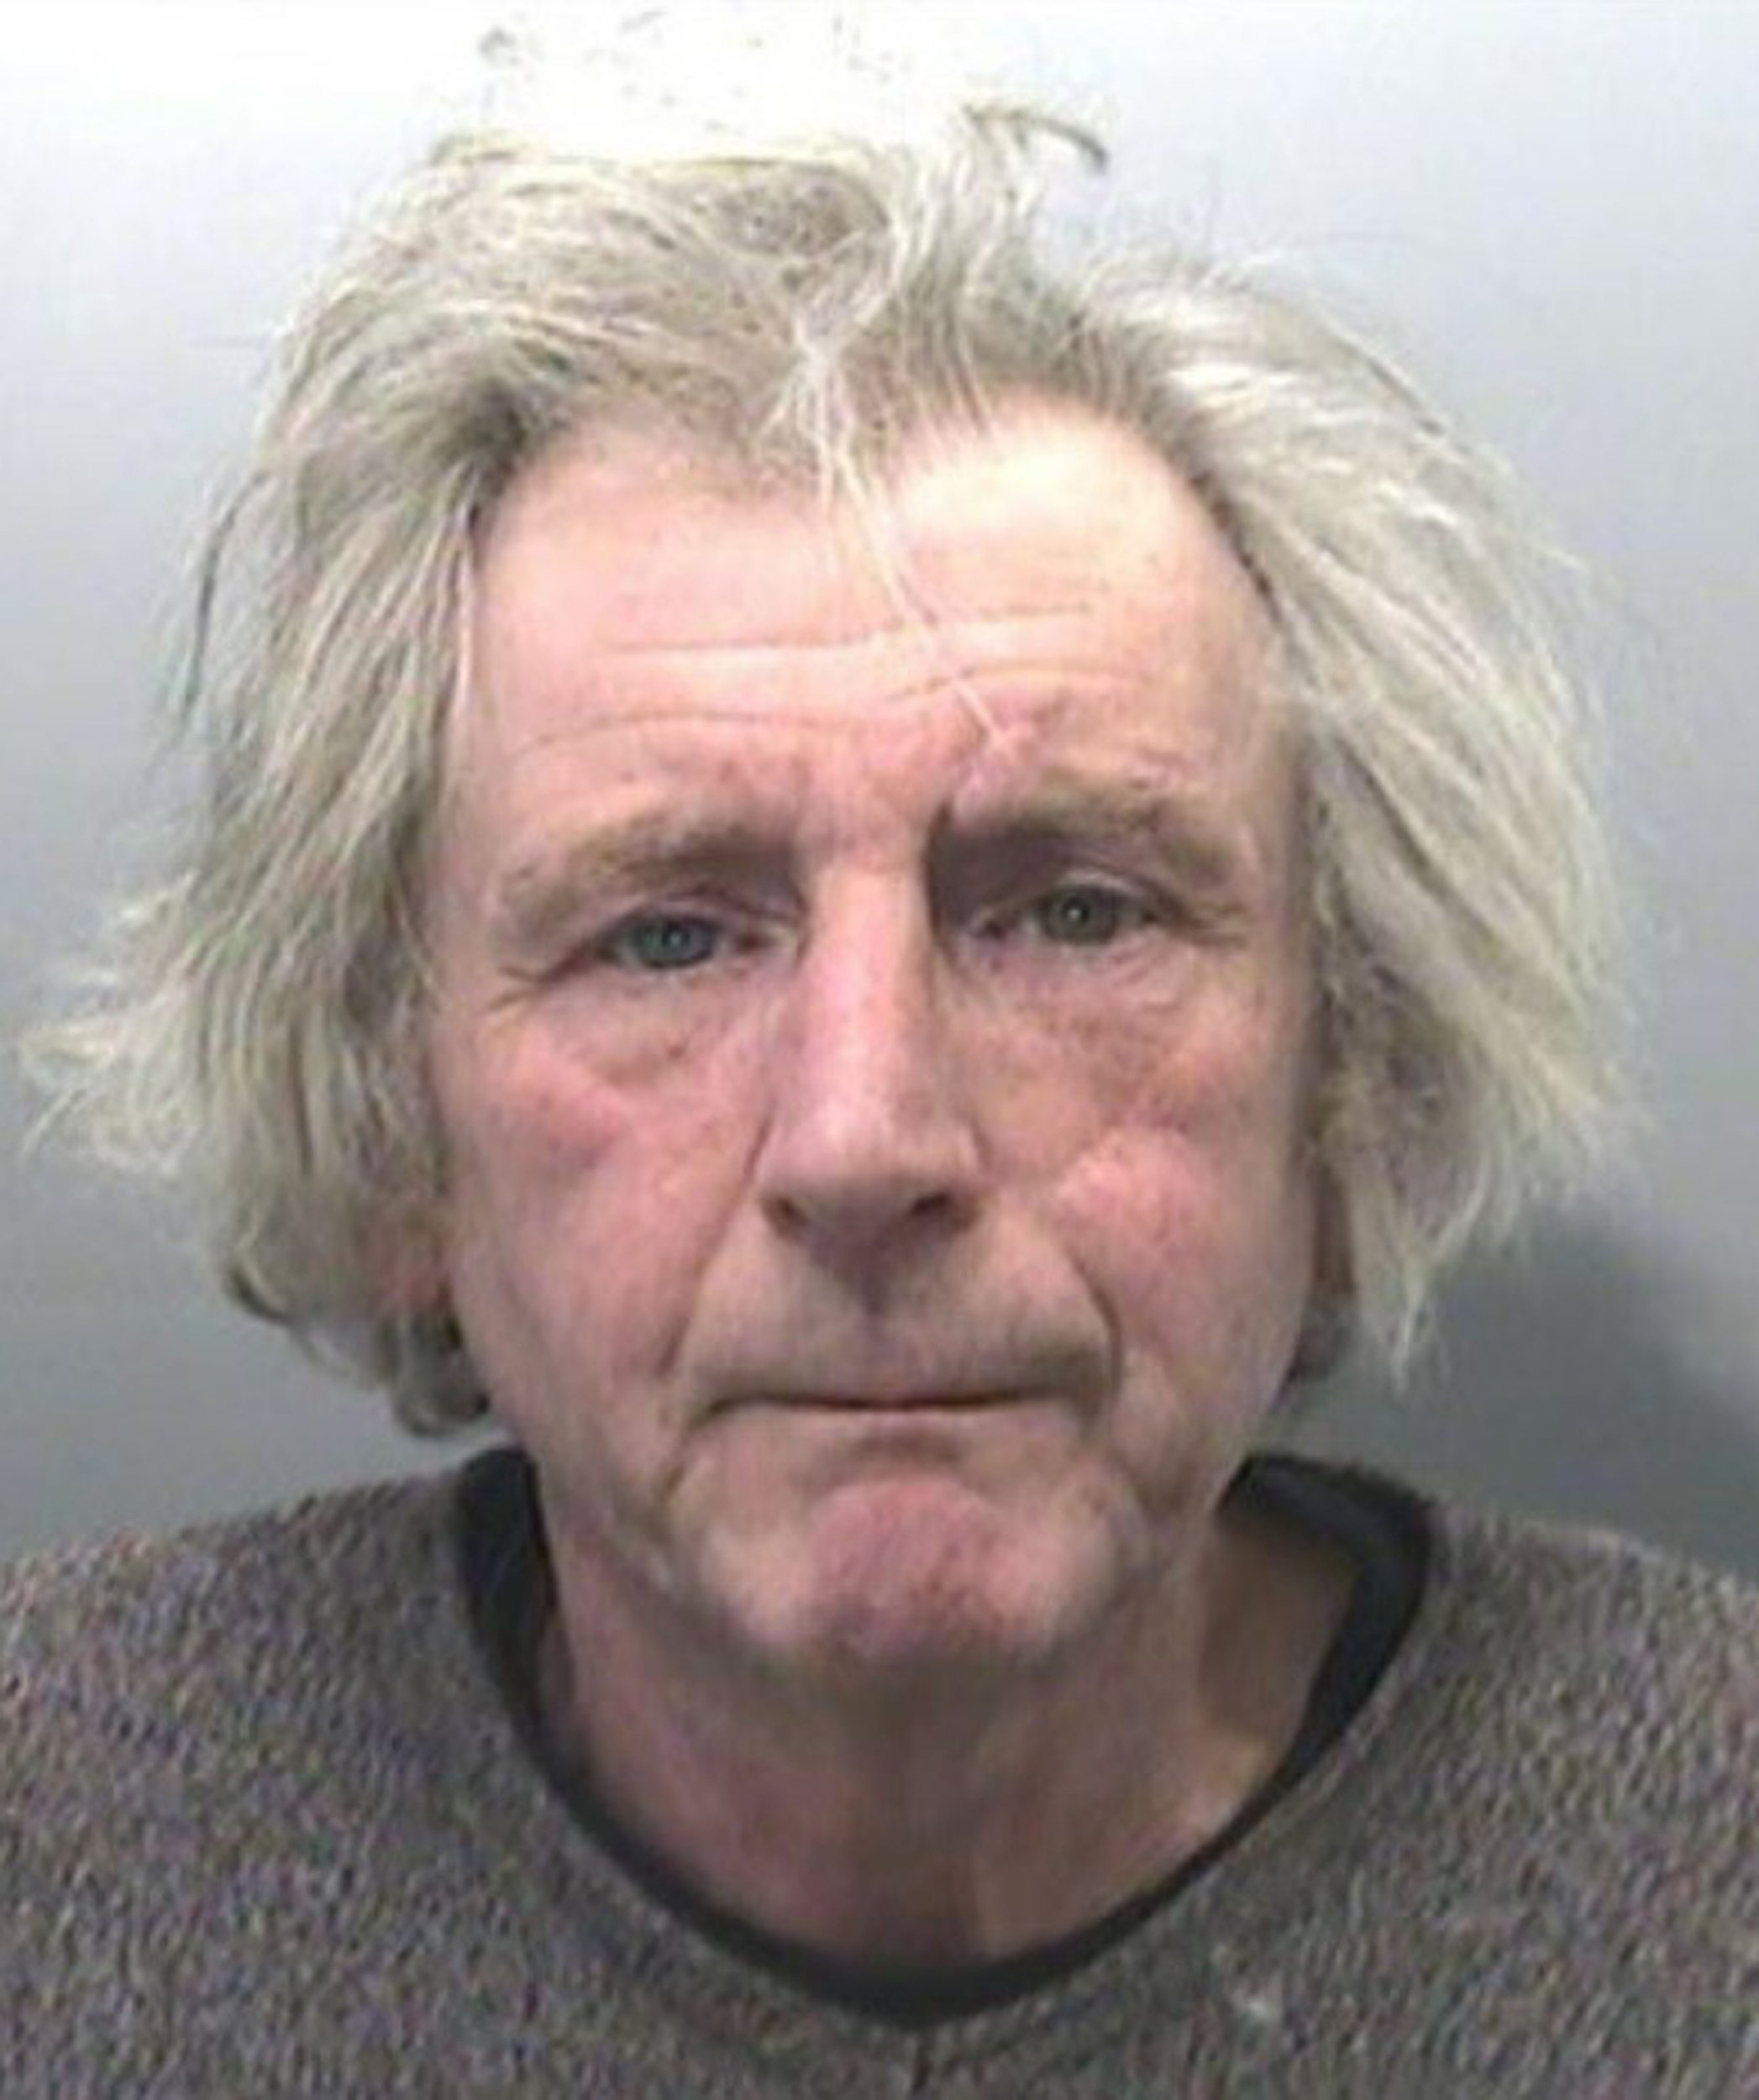 Undated handout photo issued by South Wales Police of Derek Potter who has been jailed for life for the murder of his wife. PRESS ASSOCIATION Photo. Issue date: Thursday November 8, 2018. Derek Potter, 64, strangled his wife Lesley, 66, then rigged up a noose in a spare bedroom to fake a suicide. He almost got away with murder but two weeks before his wife's cremation he confessed in a pub to a work colleague. See PA story COURTS Hanging. Photo credit should read: South Wales Police/PA Wire NOTE TO EDITORS: This handout photo may only be used in for editorial reporting purposes for the contemporaneous illustration of events, things or the people in the image or facts mentioned in the caption. Reuse of the picture may require further permission from the copyright holder.